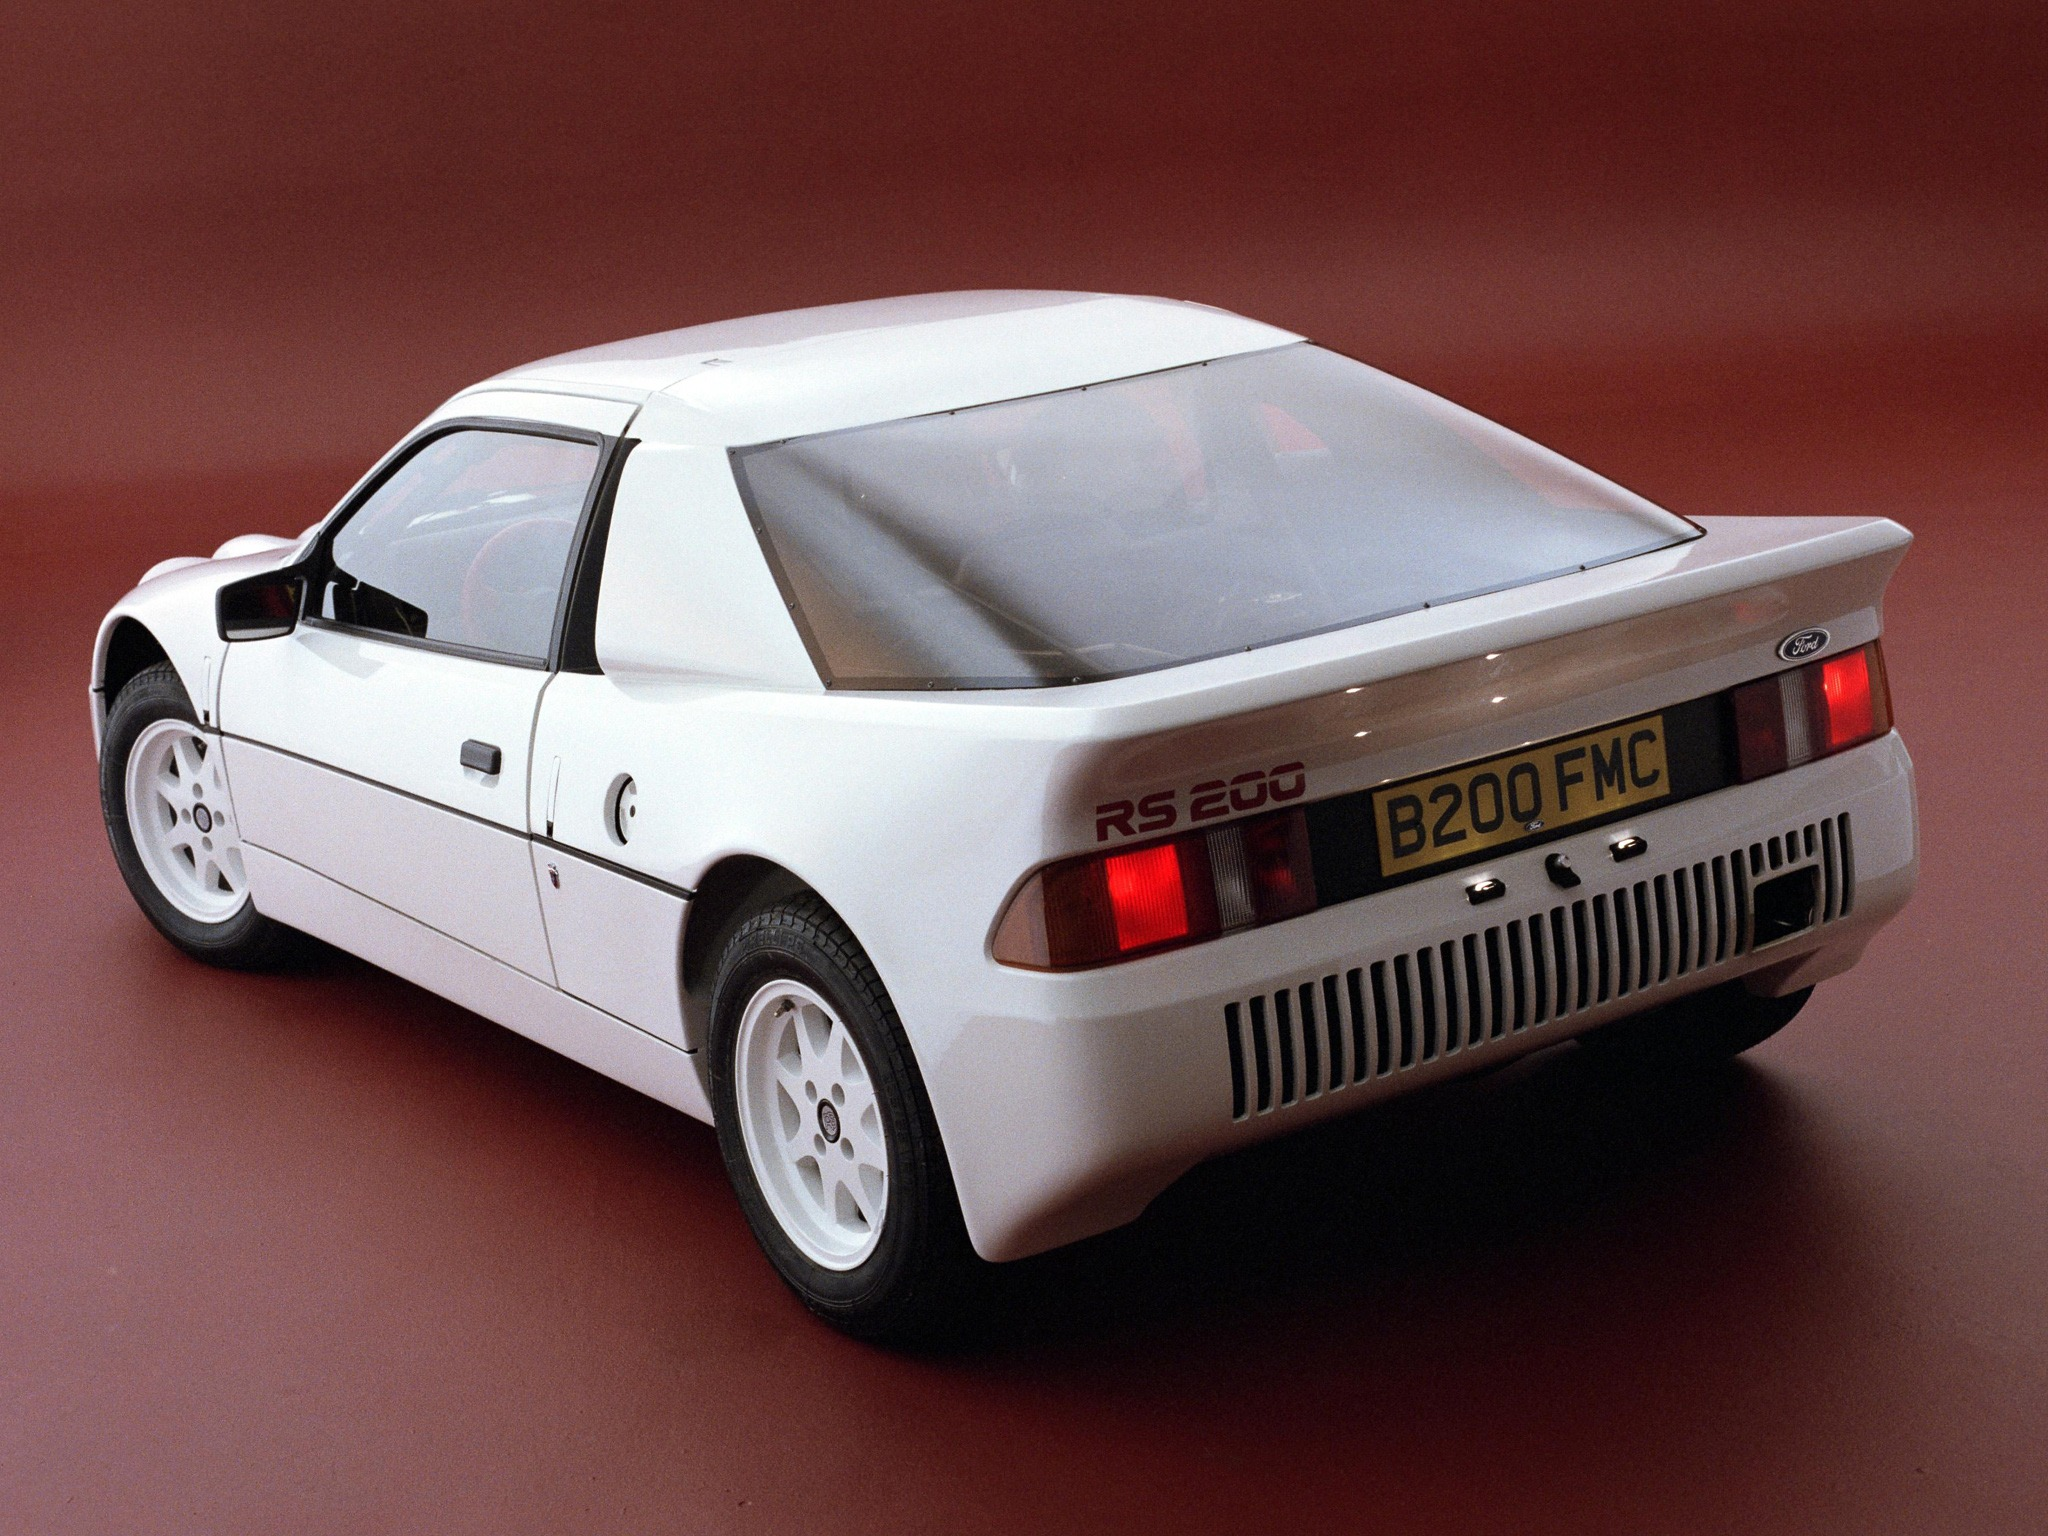 Wallpaper Amazing Convertible Cars Ford Rs200 Prototype 1984 Old Concept Cars